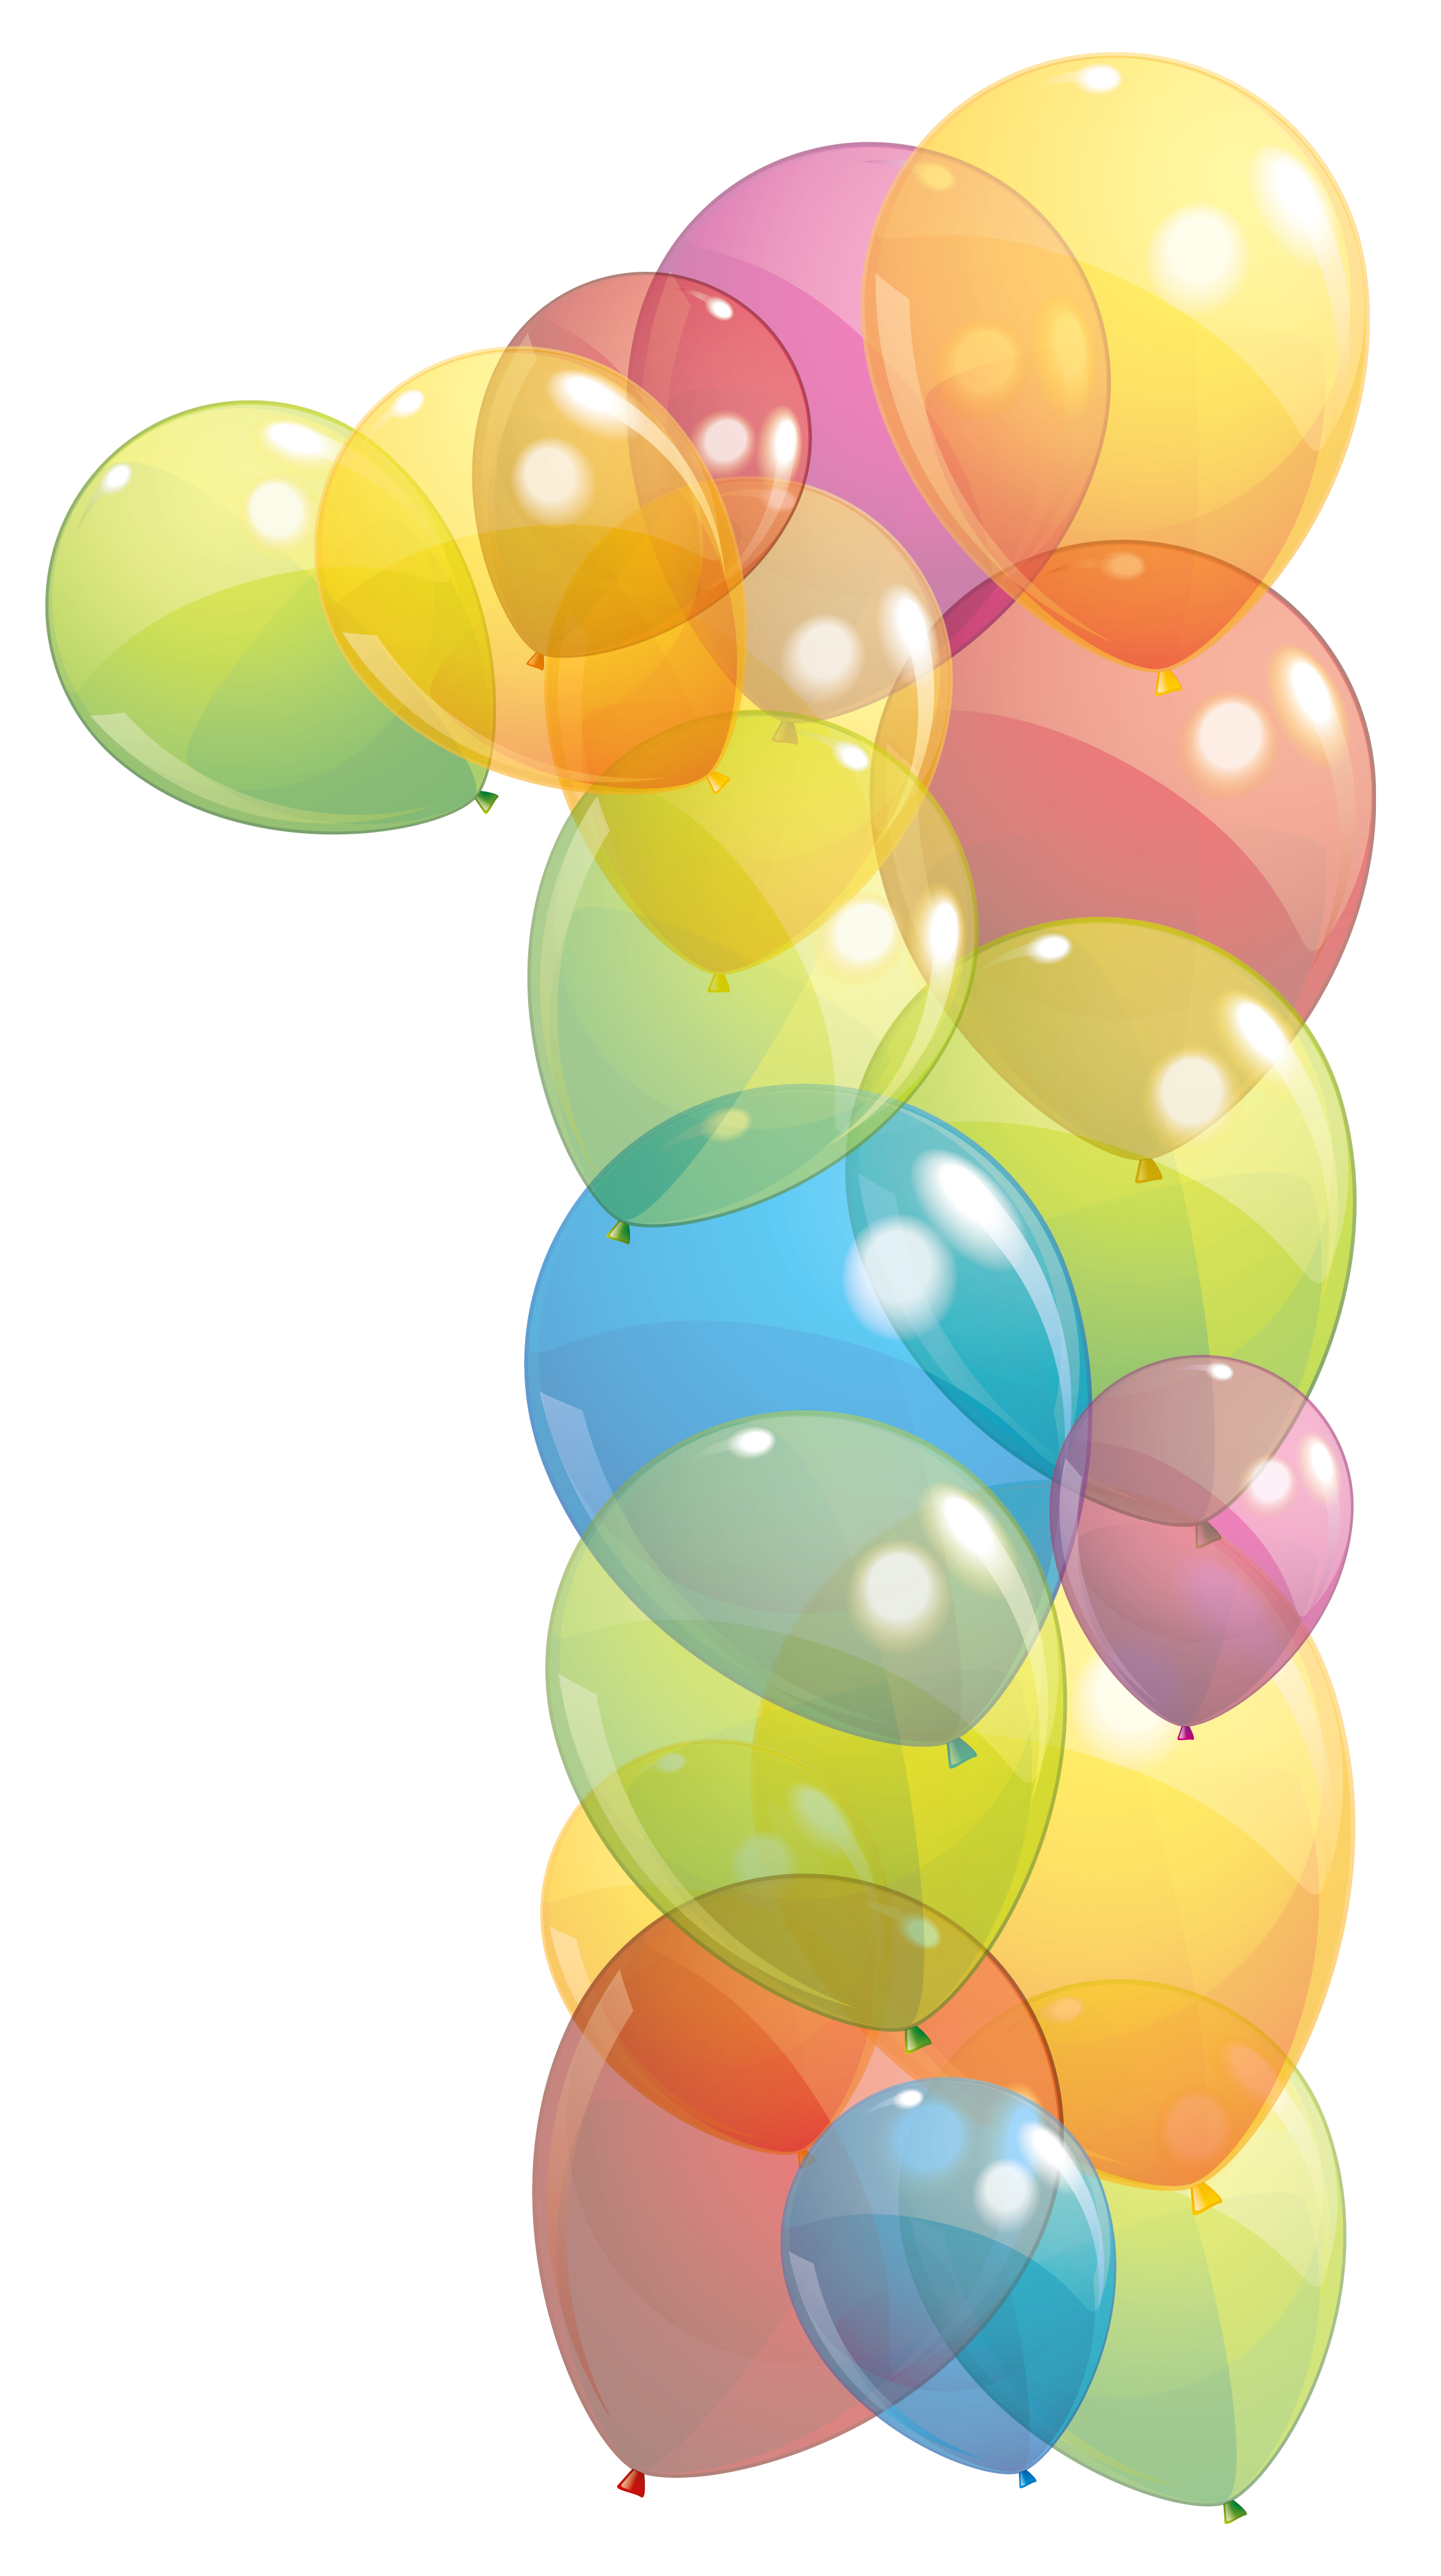 Transparent one of balloons. Clipart balloon number